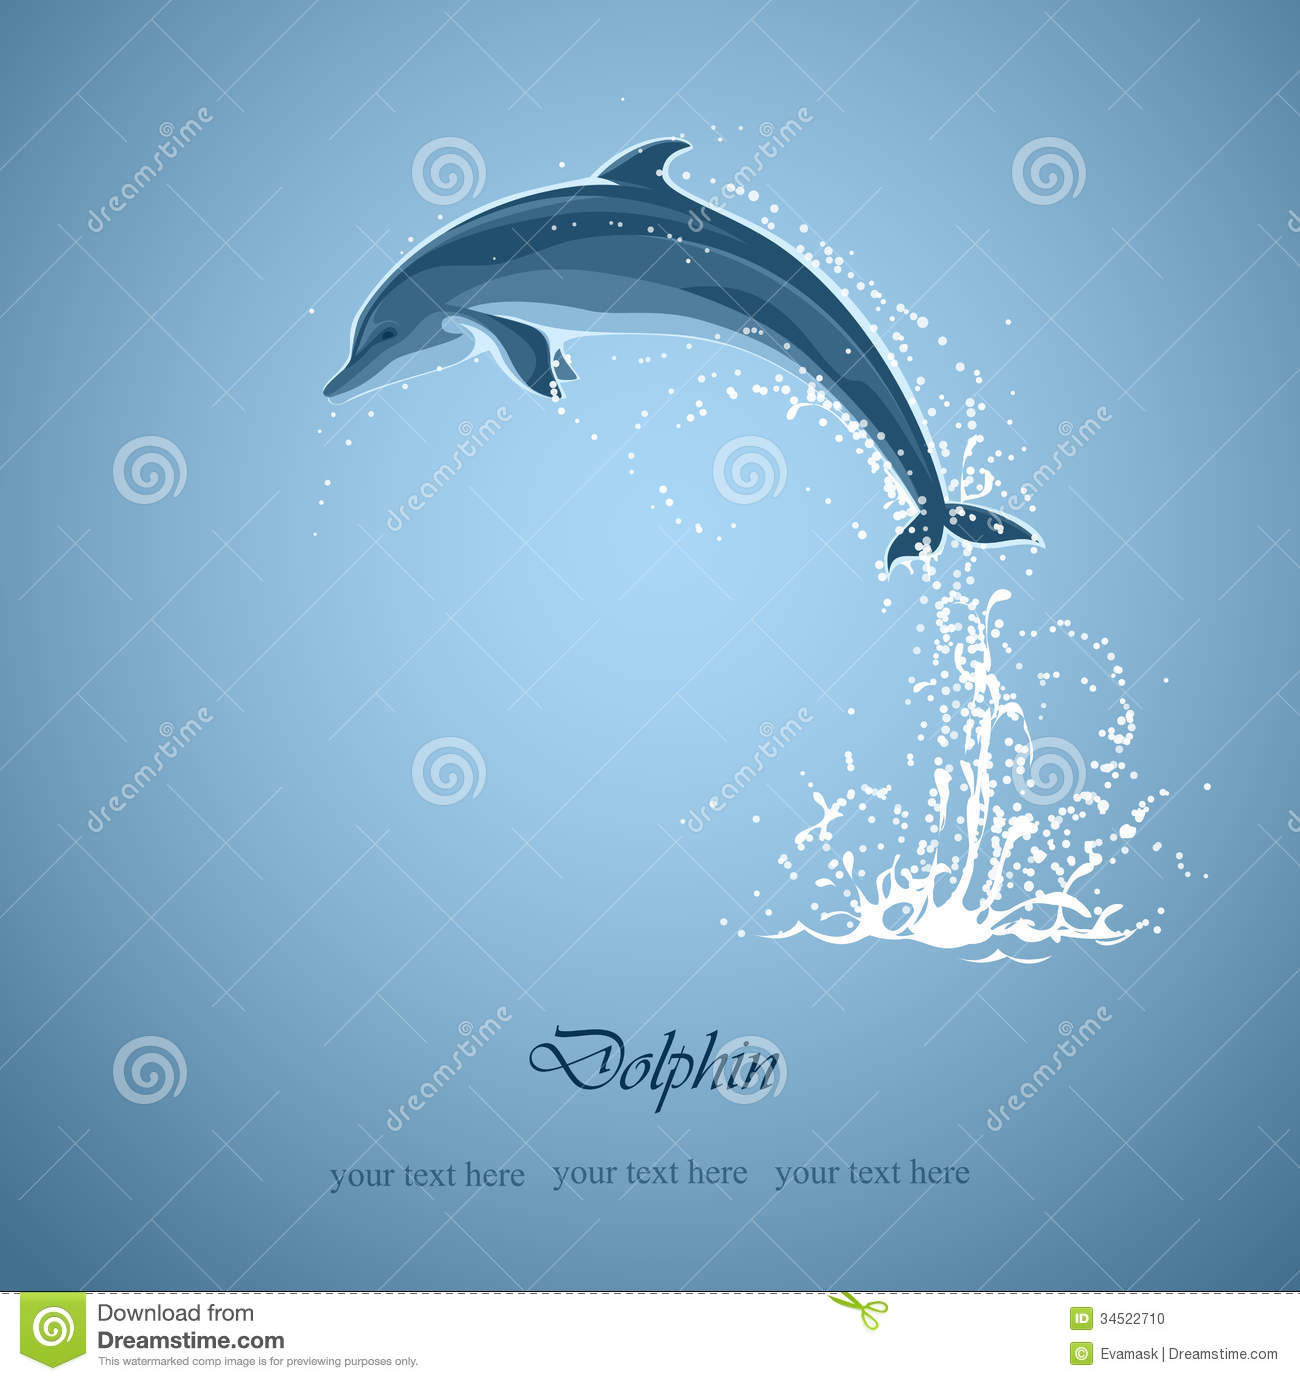 Blue background with jumping dolphin and a splash of water Pacific Ocean Underwater Animals